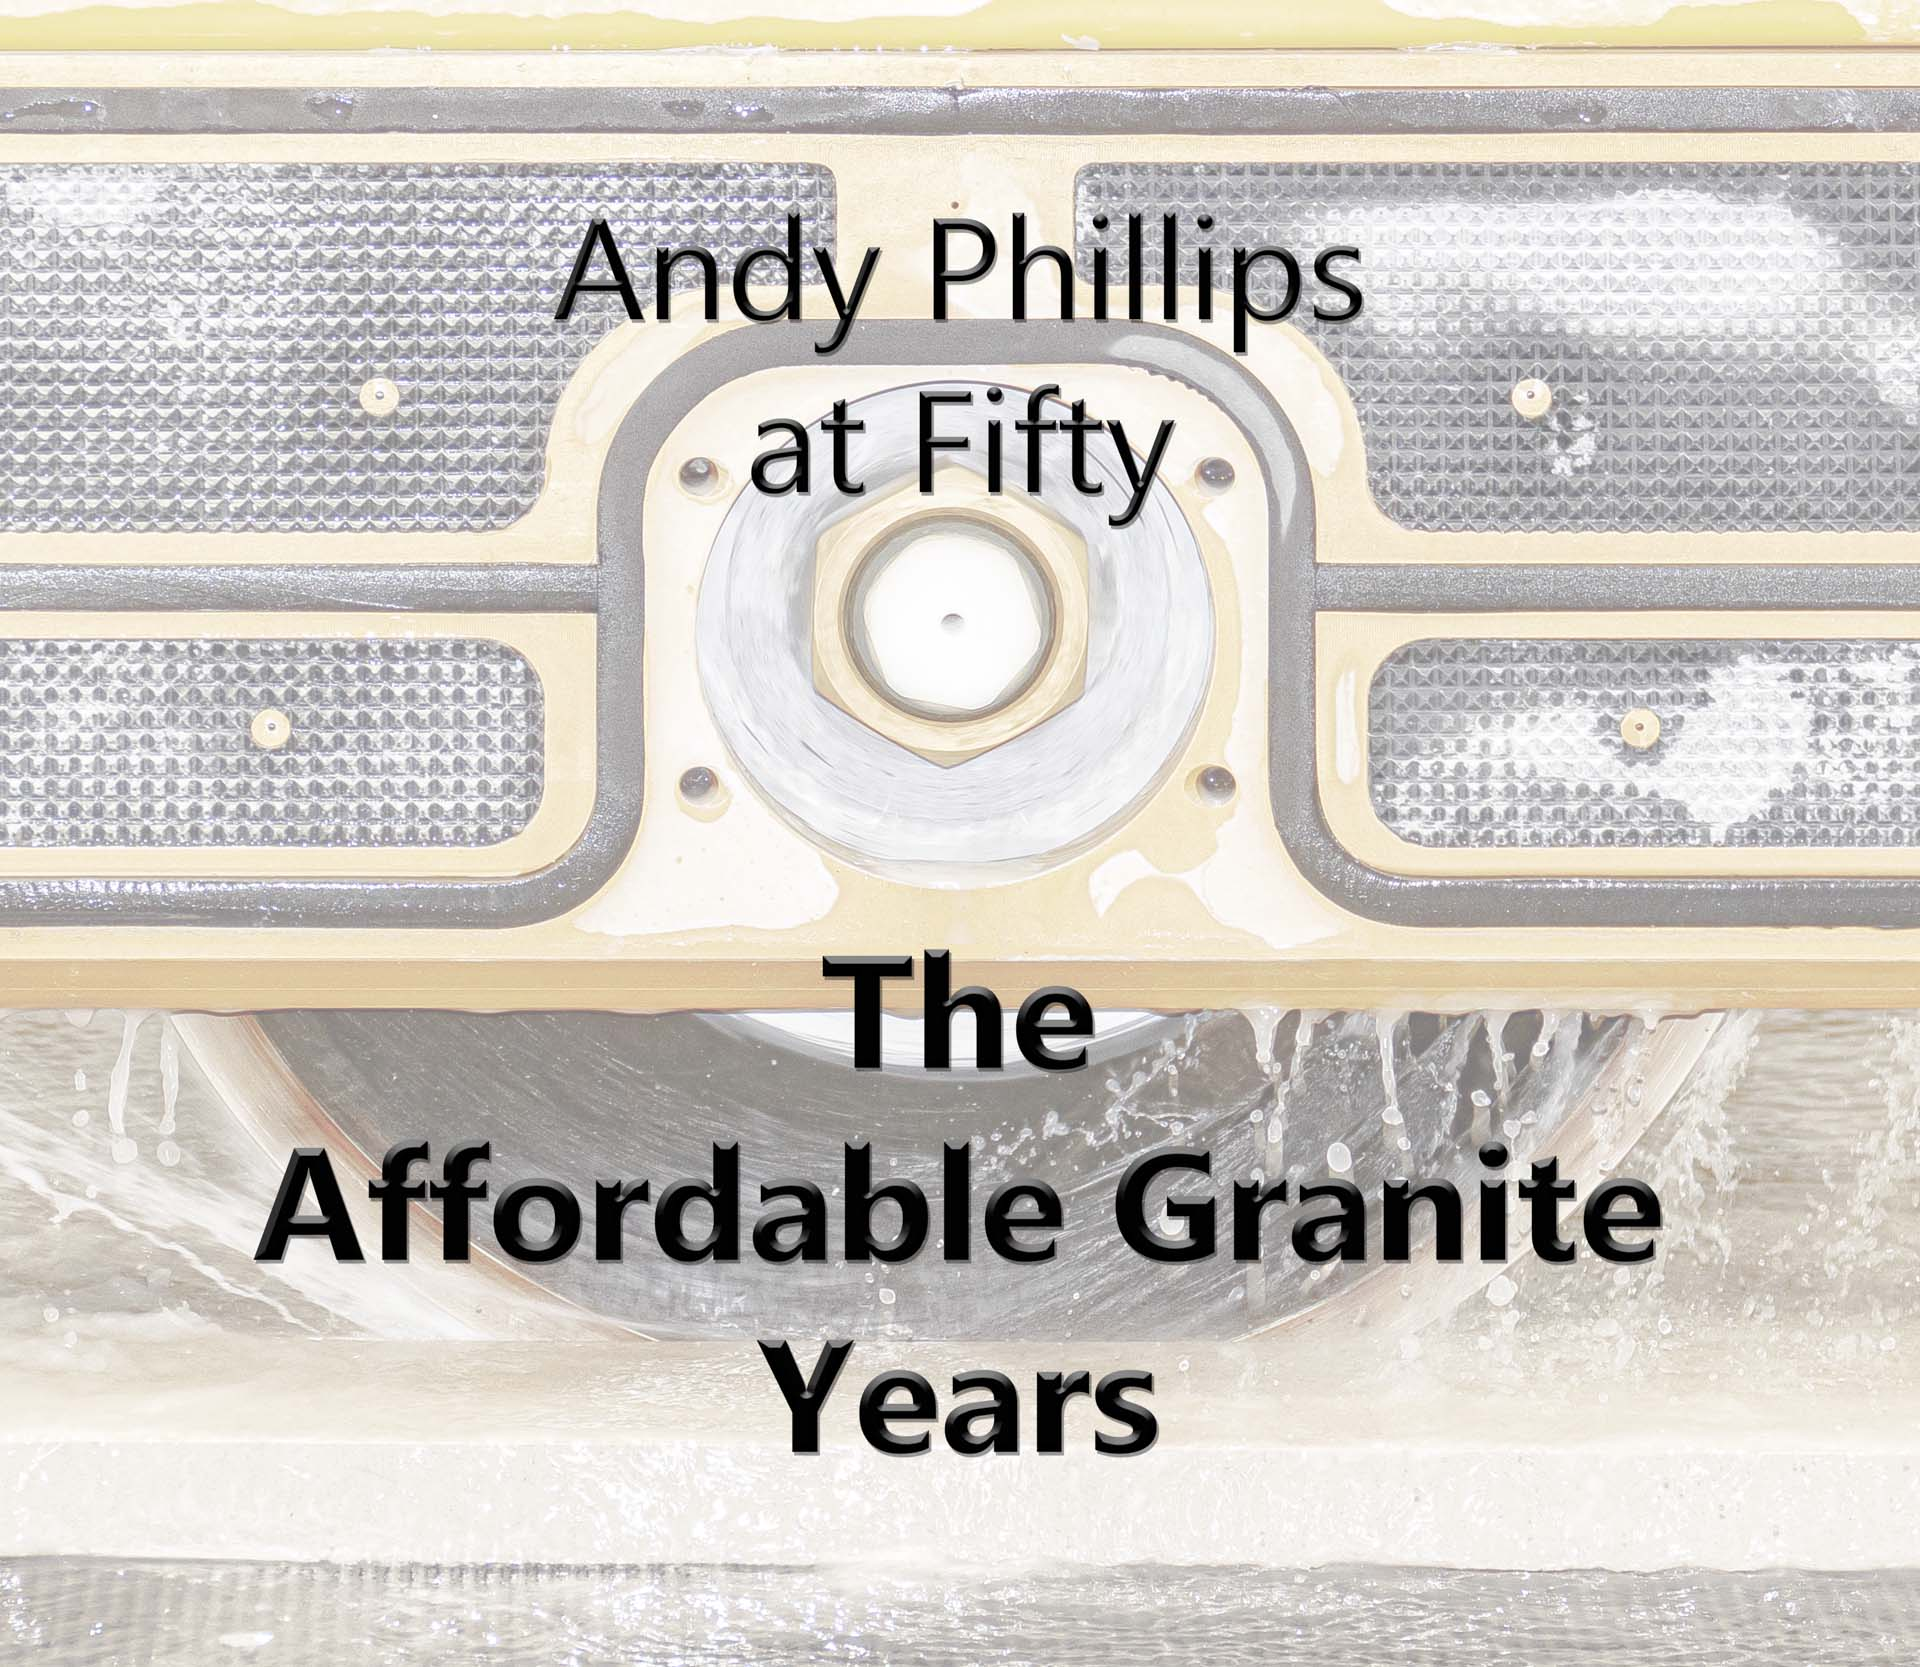 book for andy phillips